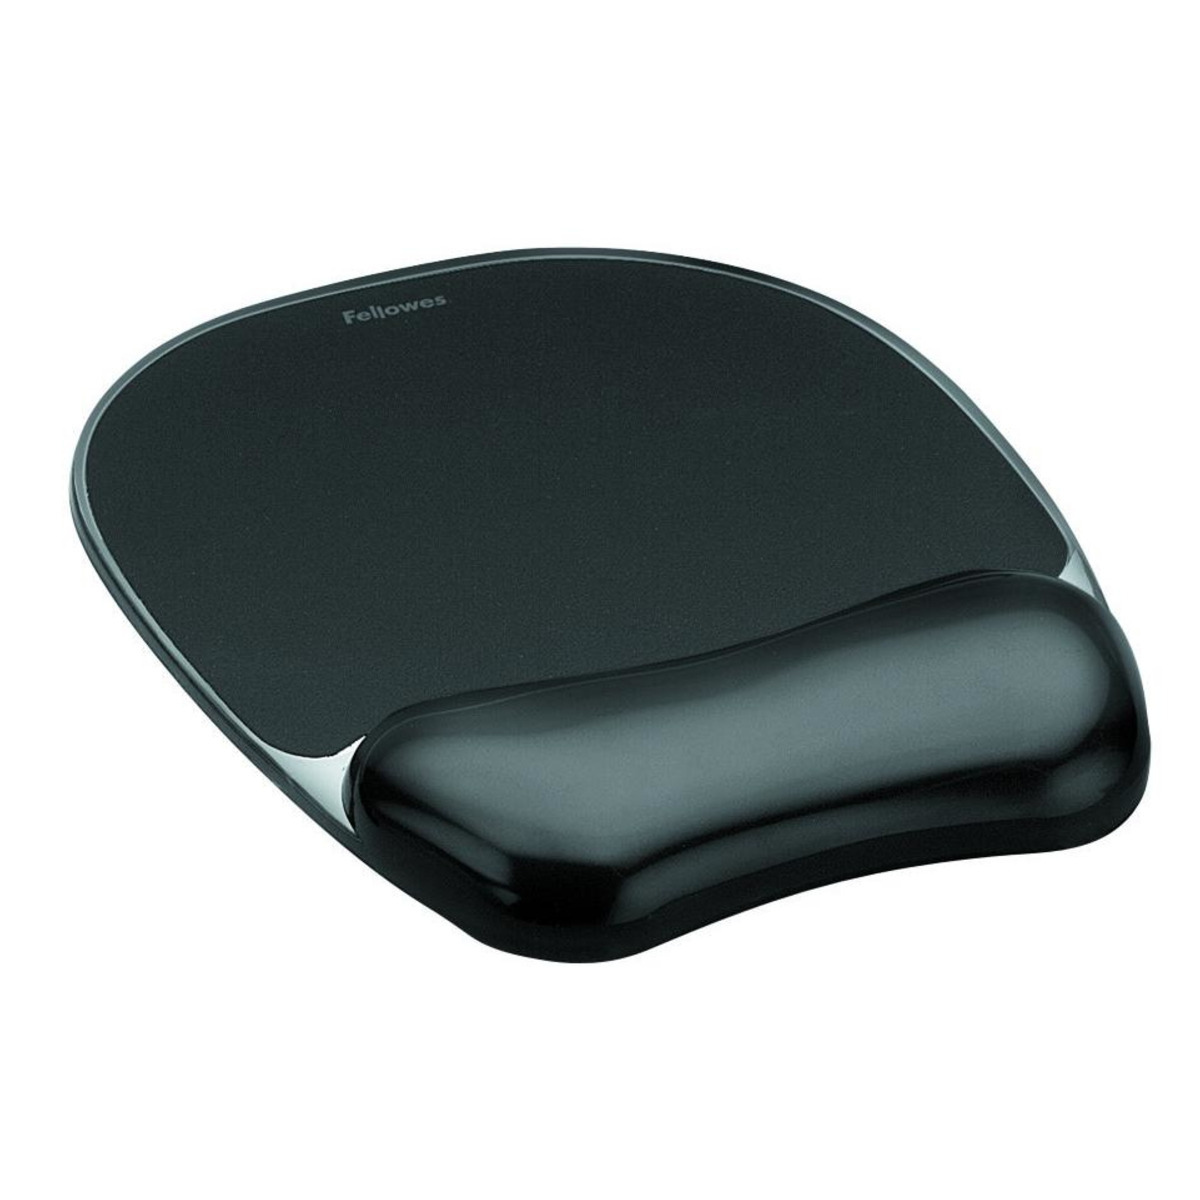 0043859527175-fellowes-tappetini-per-mouse-mousepad-gelcrystals-supp-polso-ner-nero